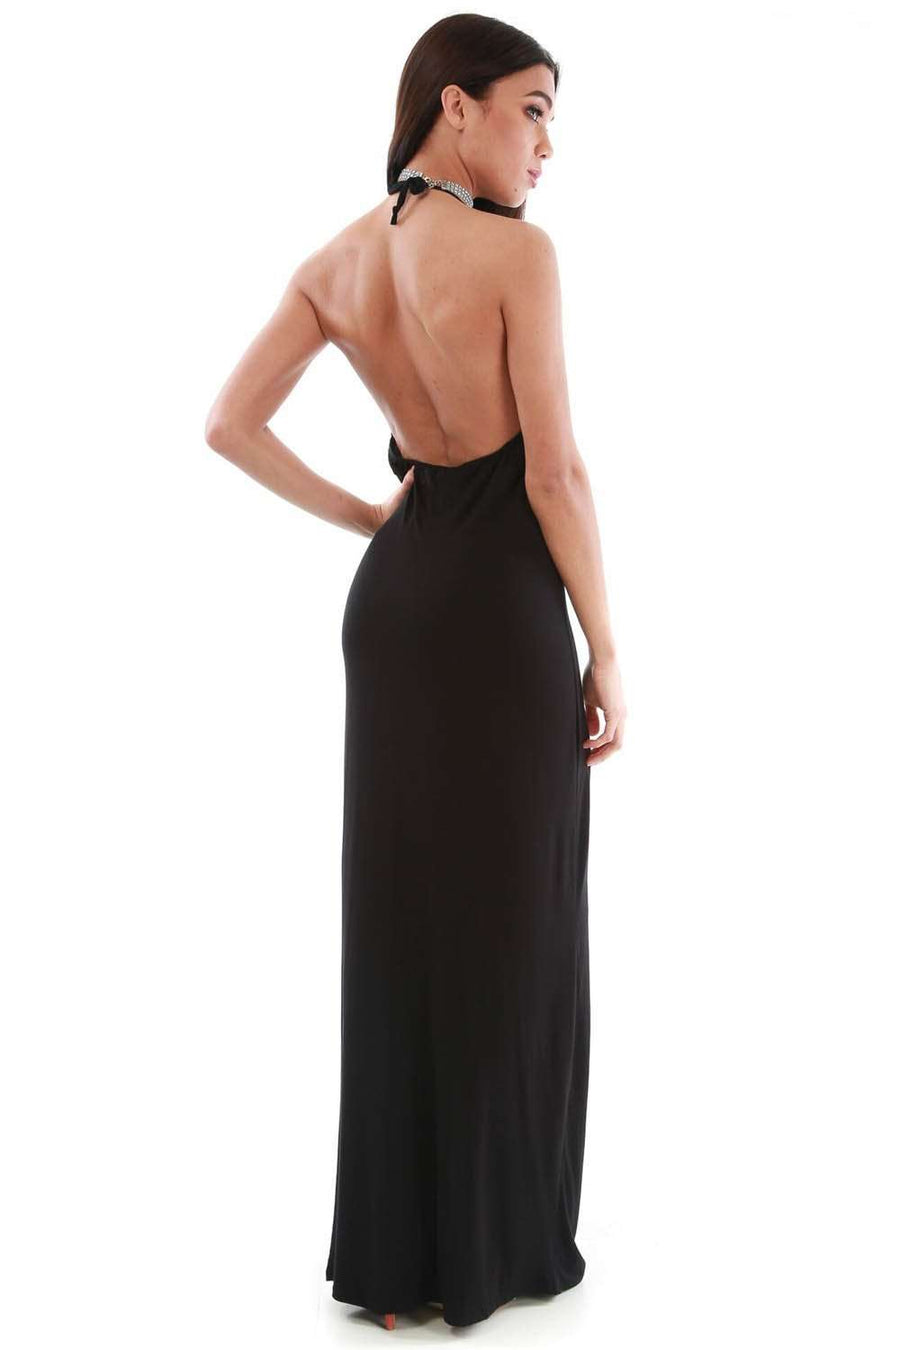 Lillie Basic Jersey Halterneck Maxi Dress - bejealous-com